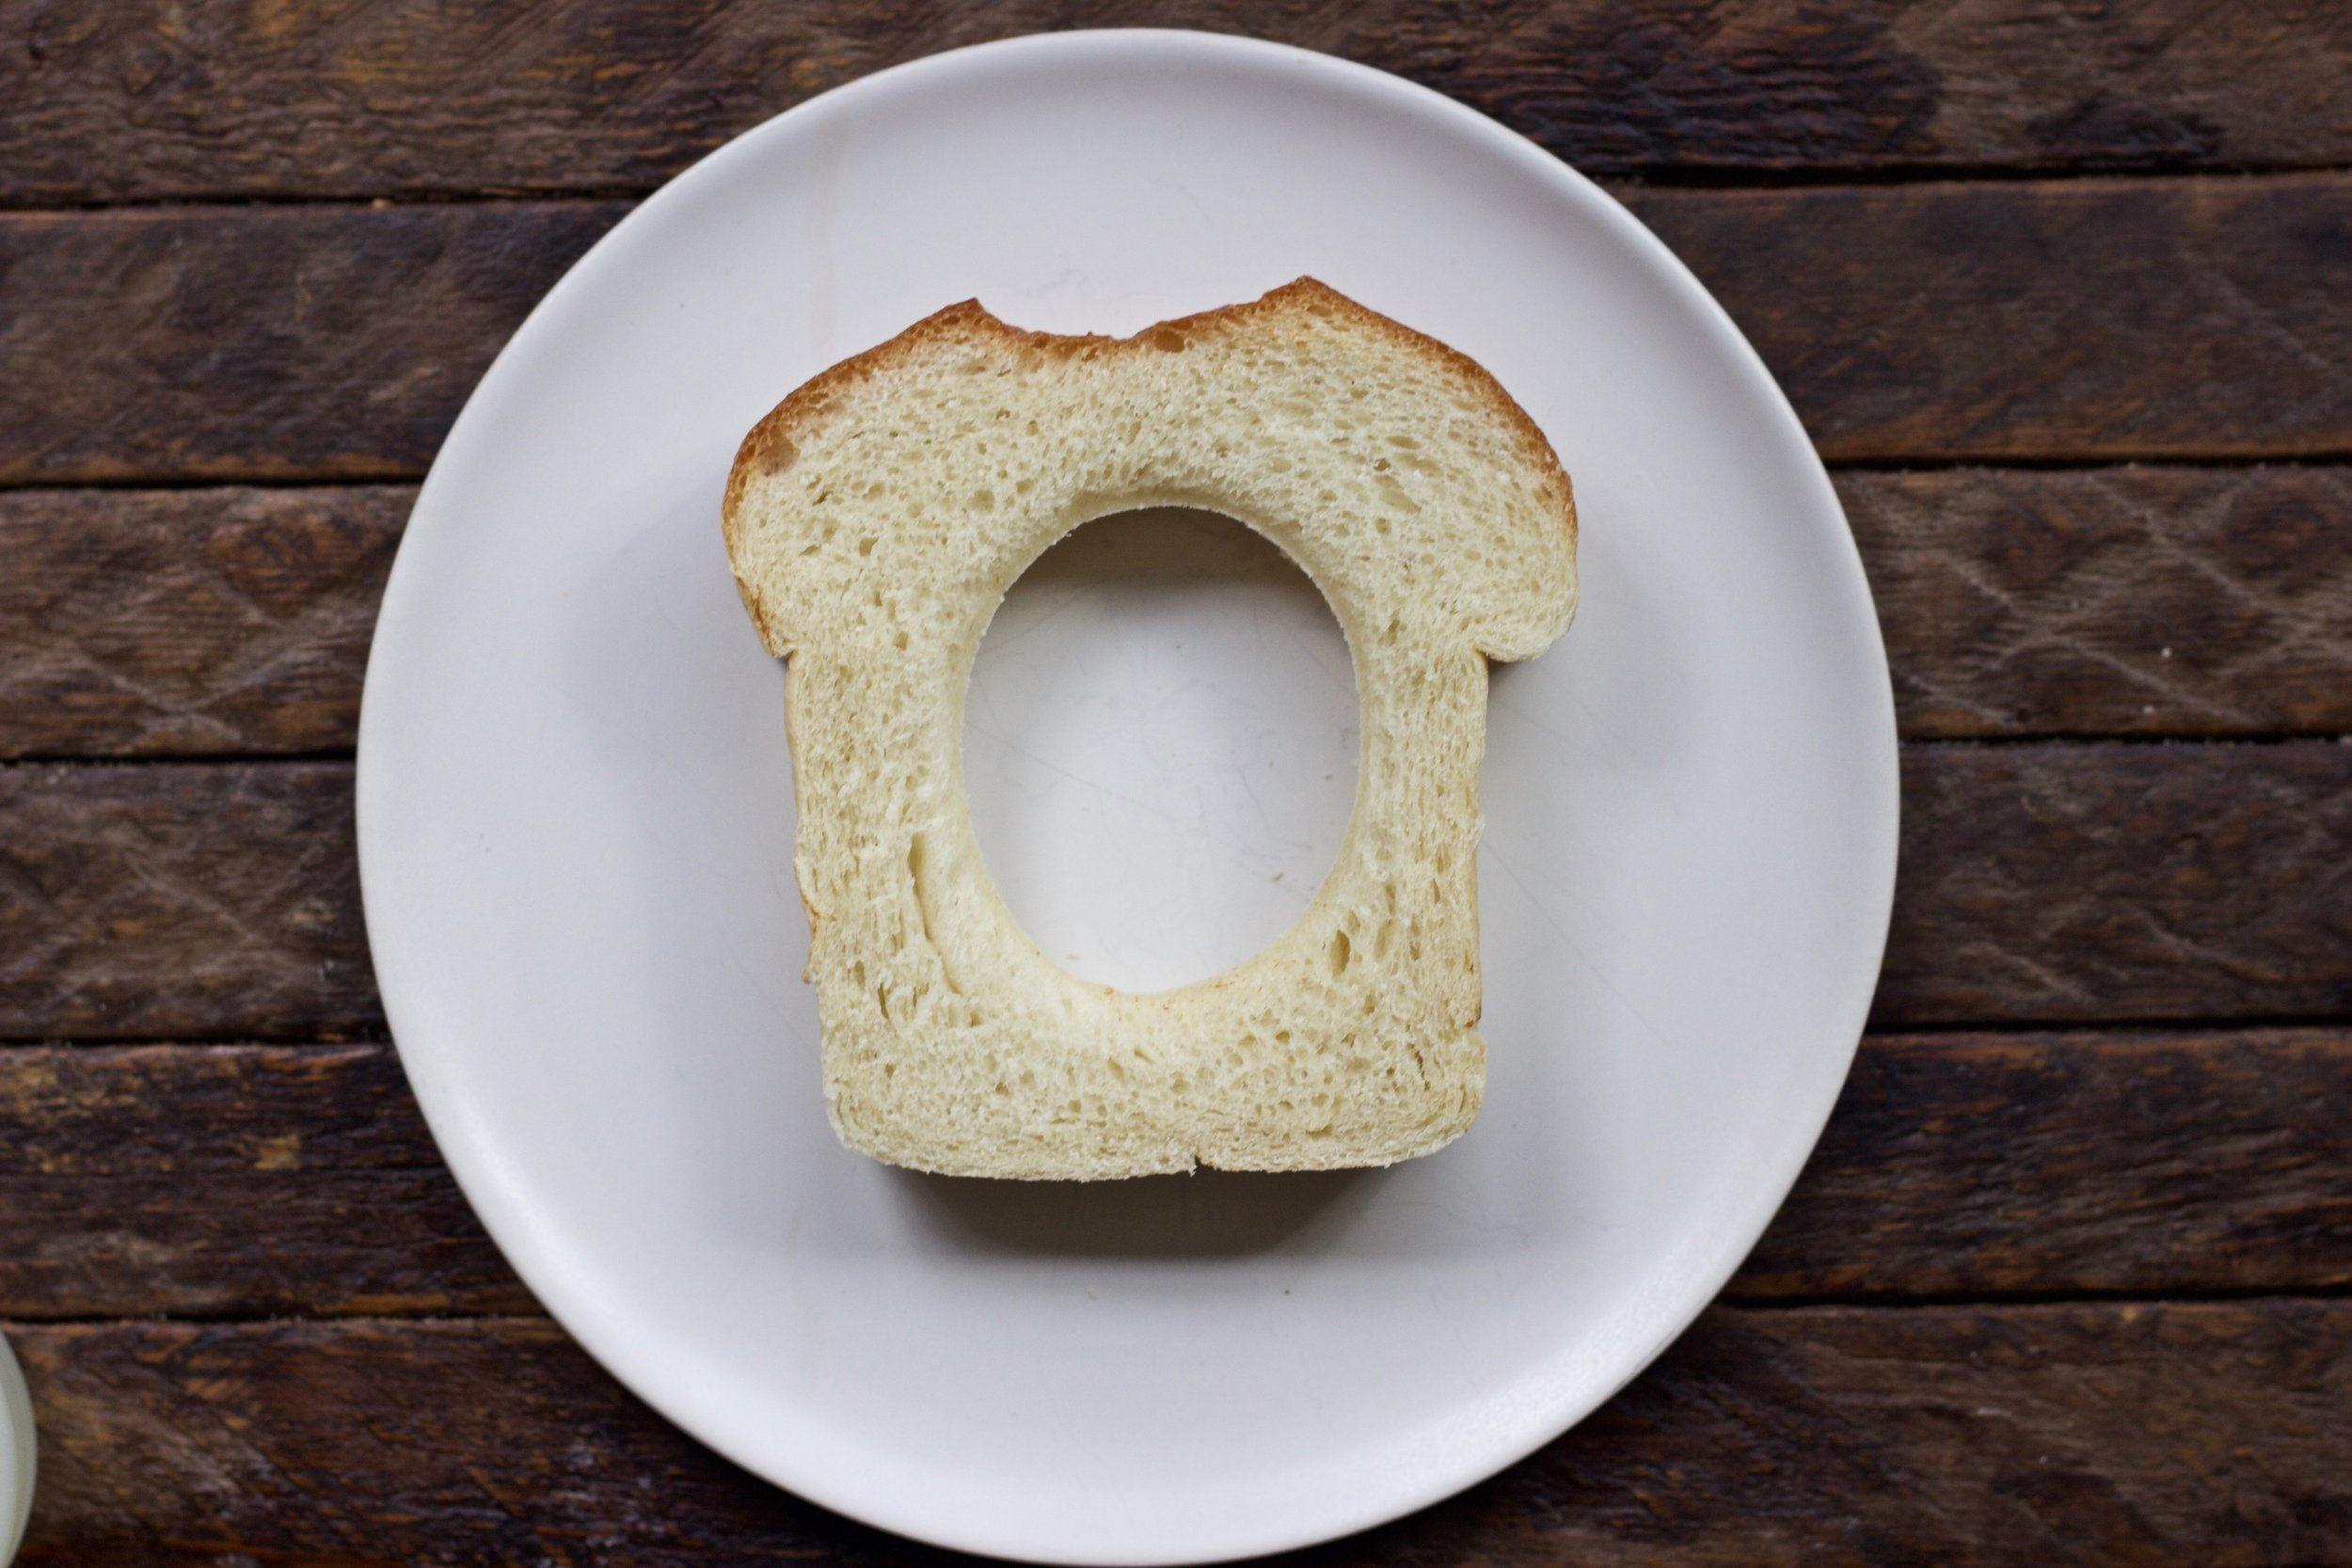 Hole in the bread